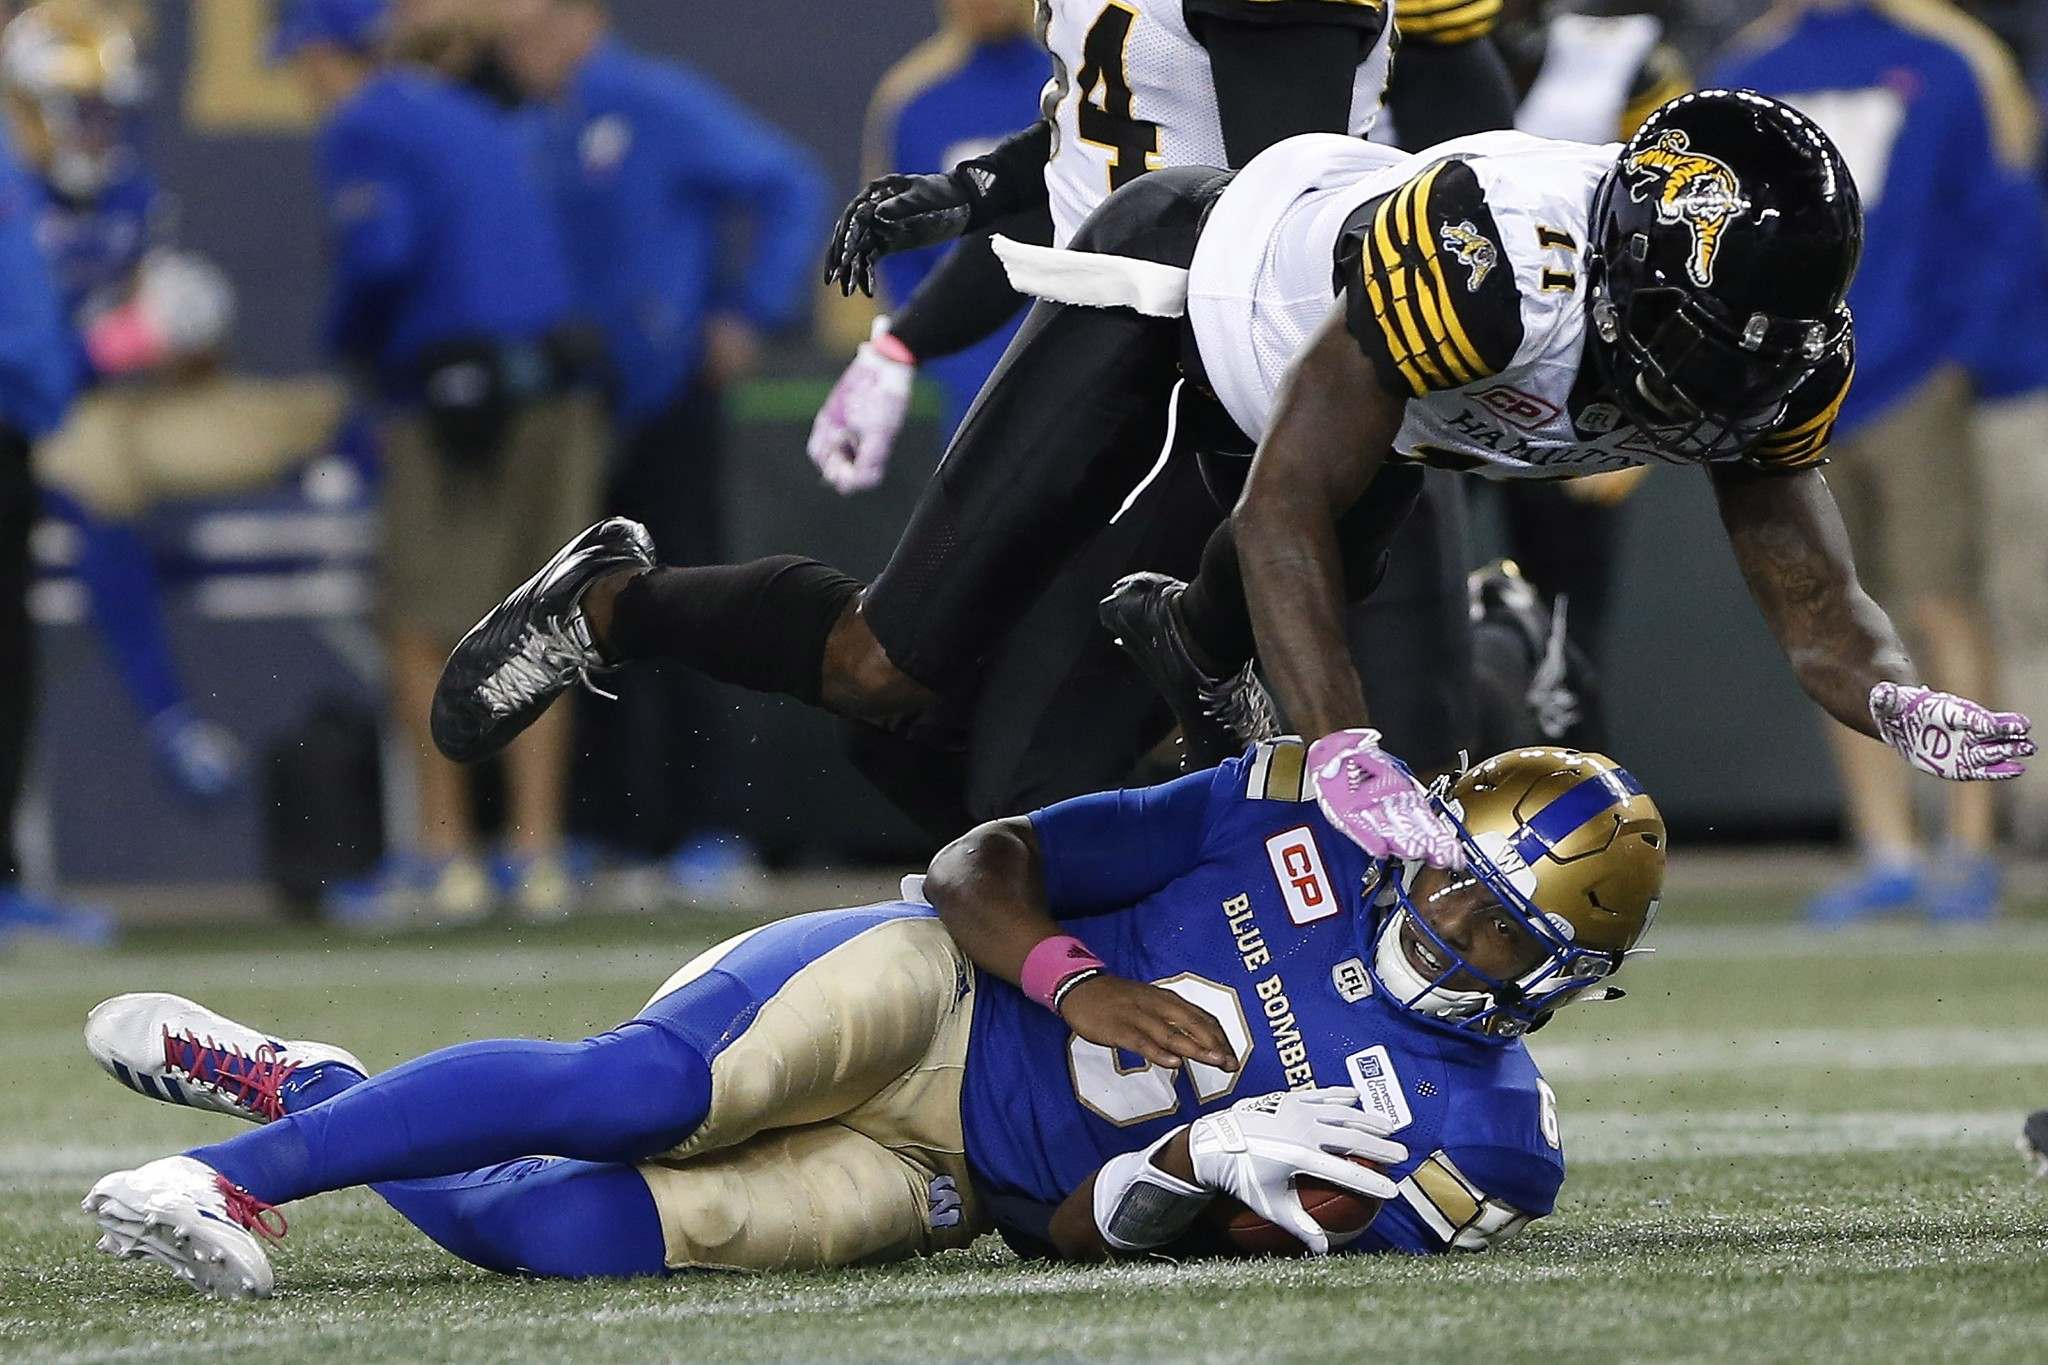 John Woods / THE CANADIAN PRESS FILES</p><p>The Hamilton Tiger-Cats&rsquo; Larry Dean, seen leaping over Winnipeg Blue Bombers quarterback Dominique Davis during a game in October, could push the Blue and Gold to the next level.</p>